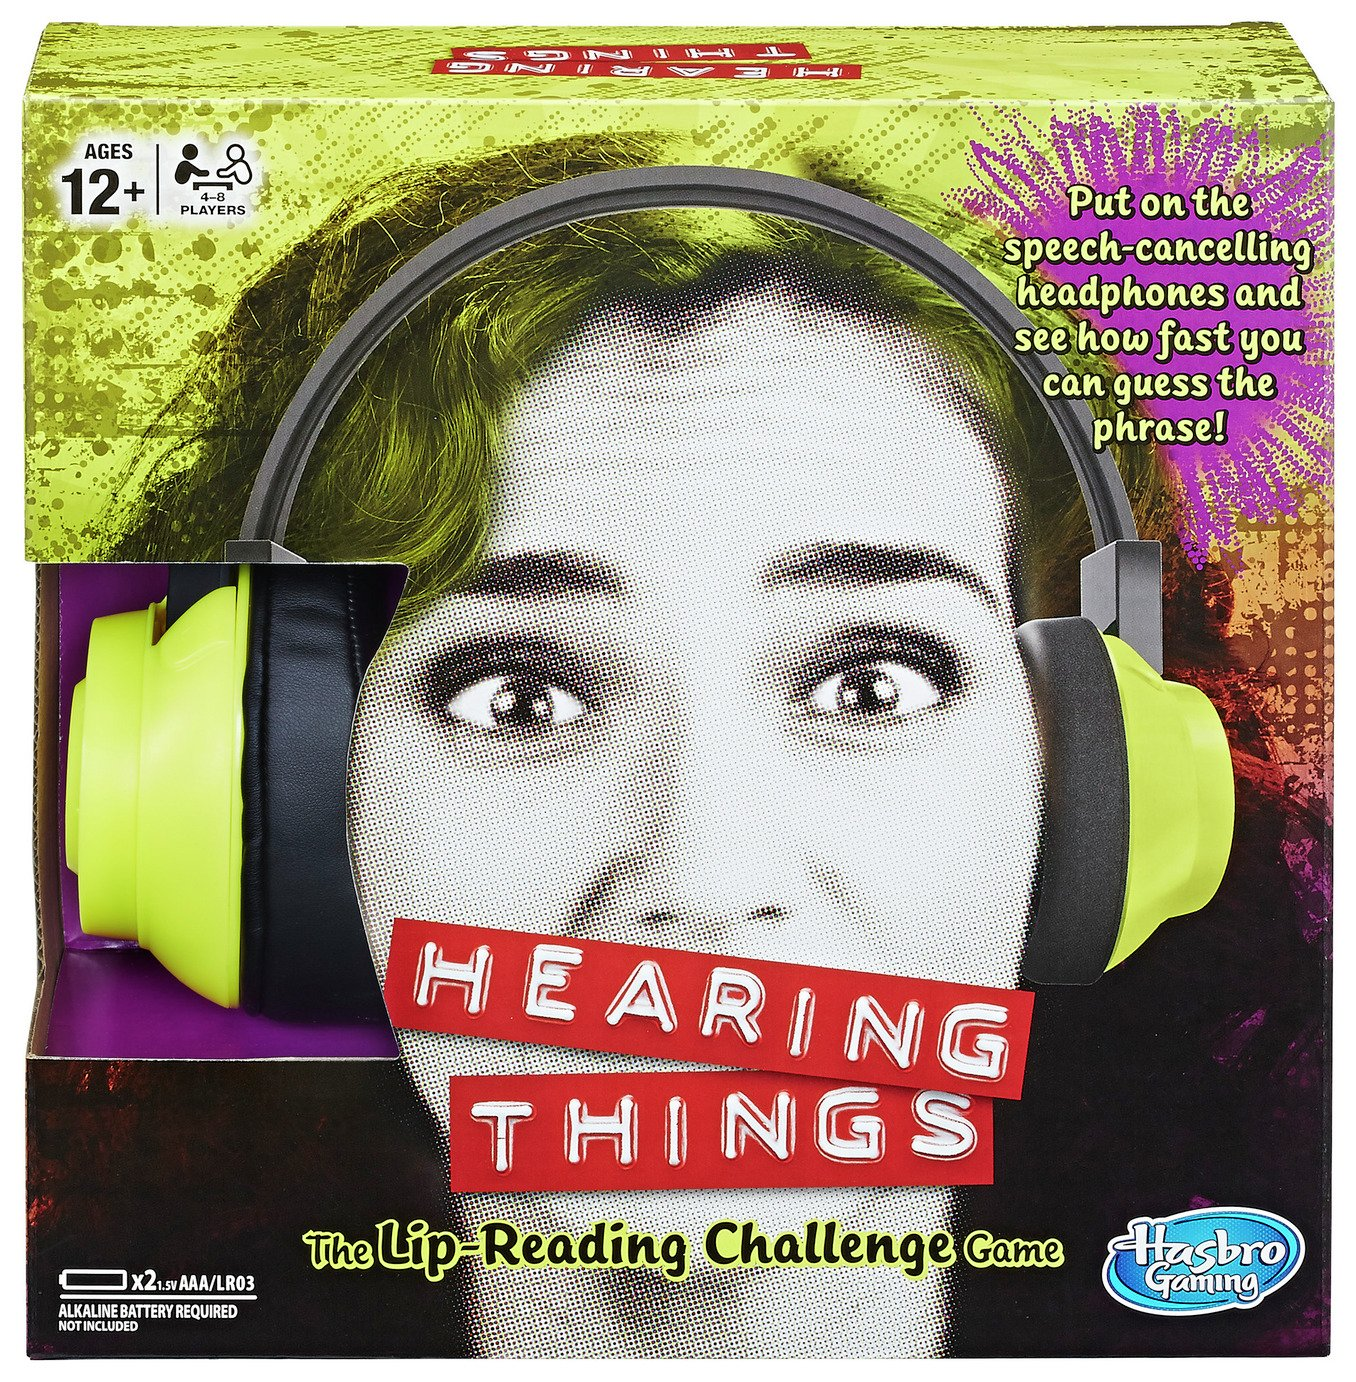 Hearing Things Game from Hasbro Gaming